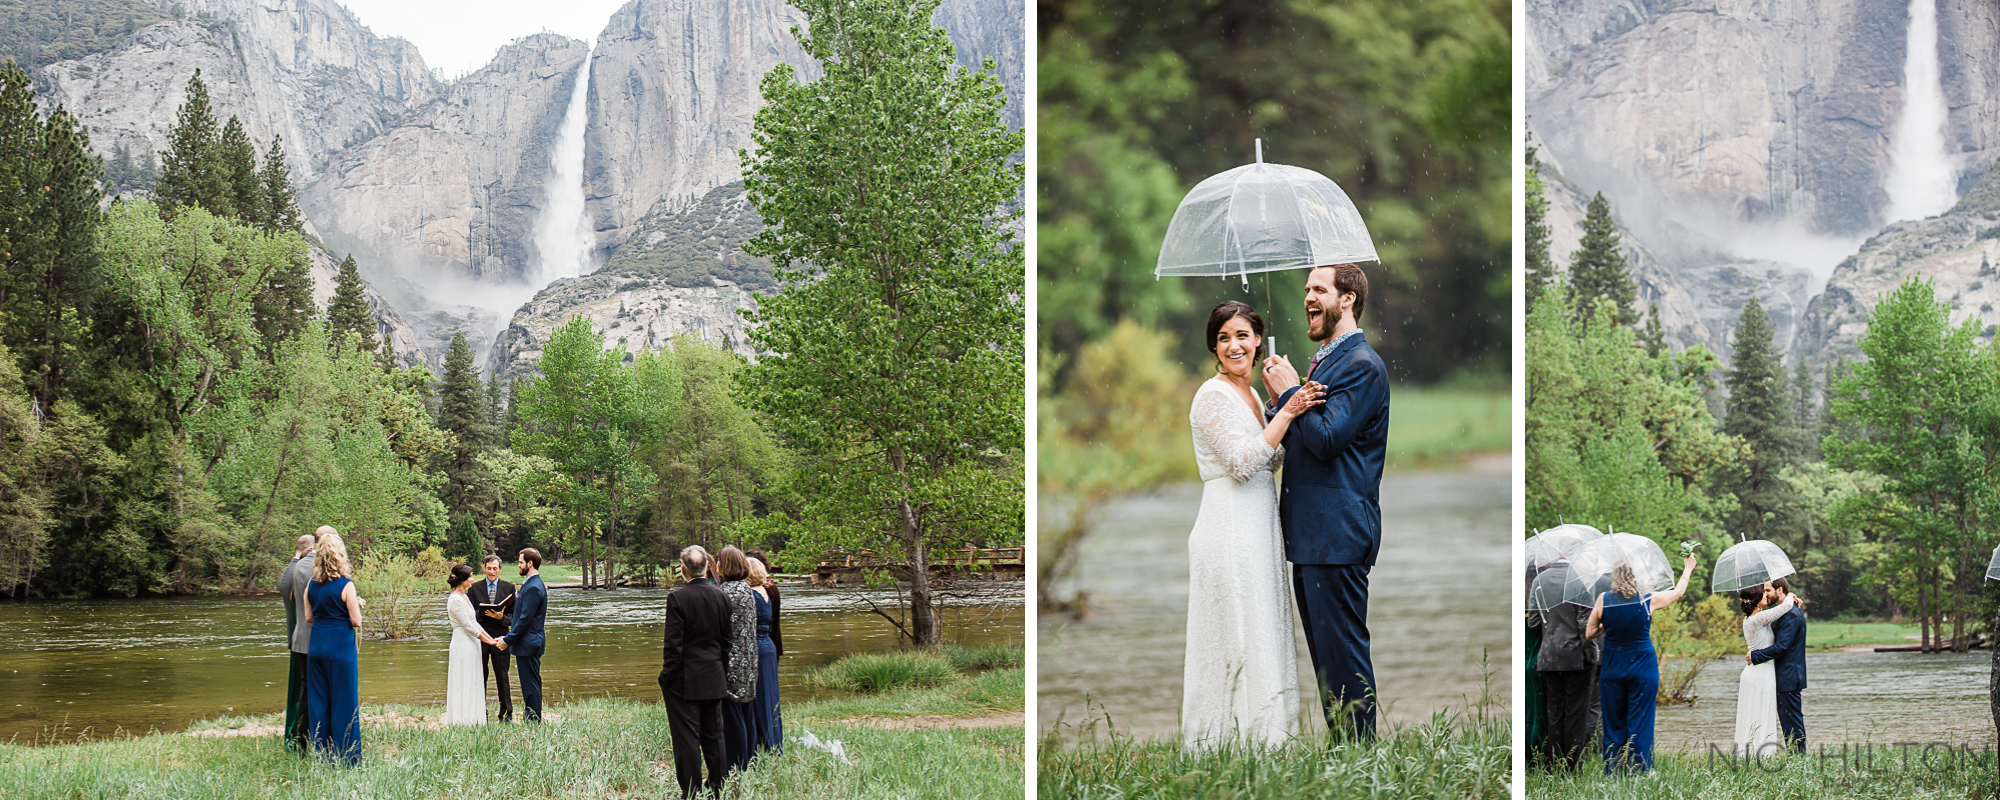 Elopement-Ceremony-Yosemite-Falls-Photography.jpg